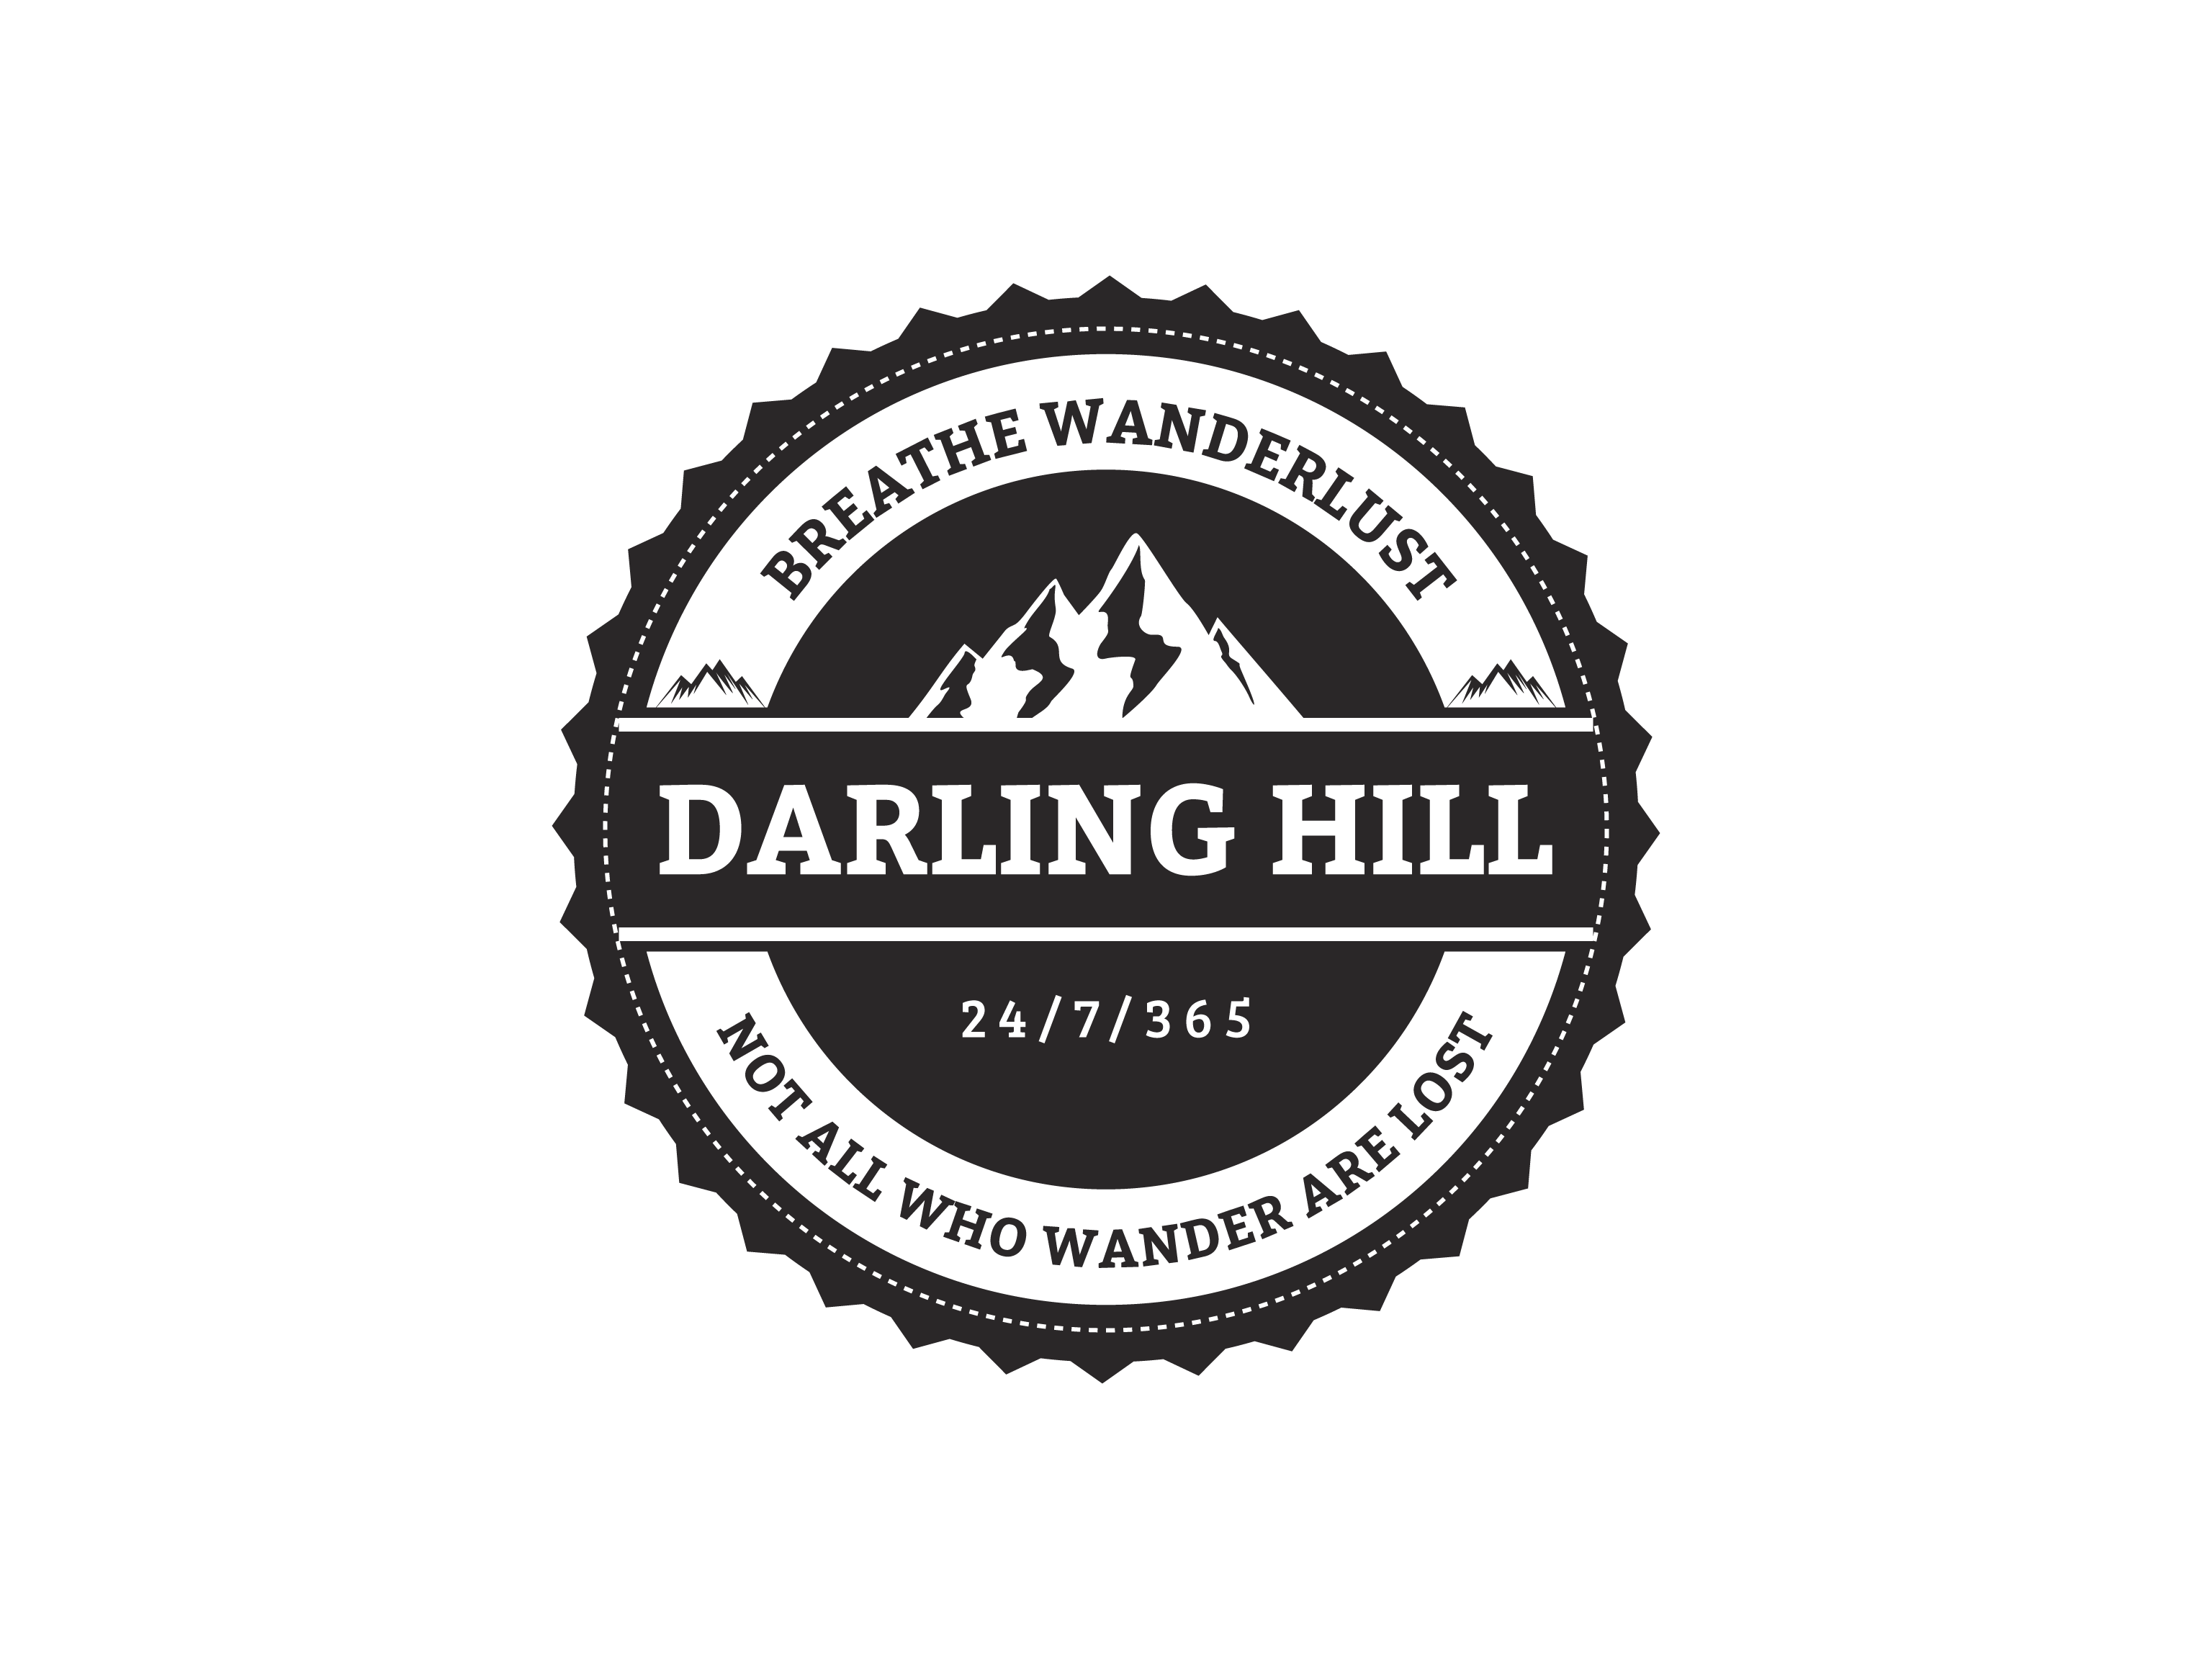 Darling Hill